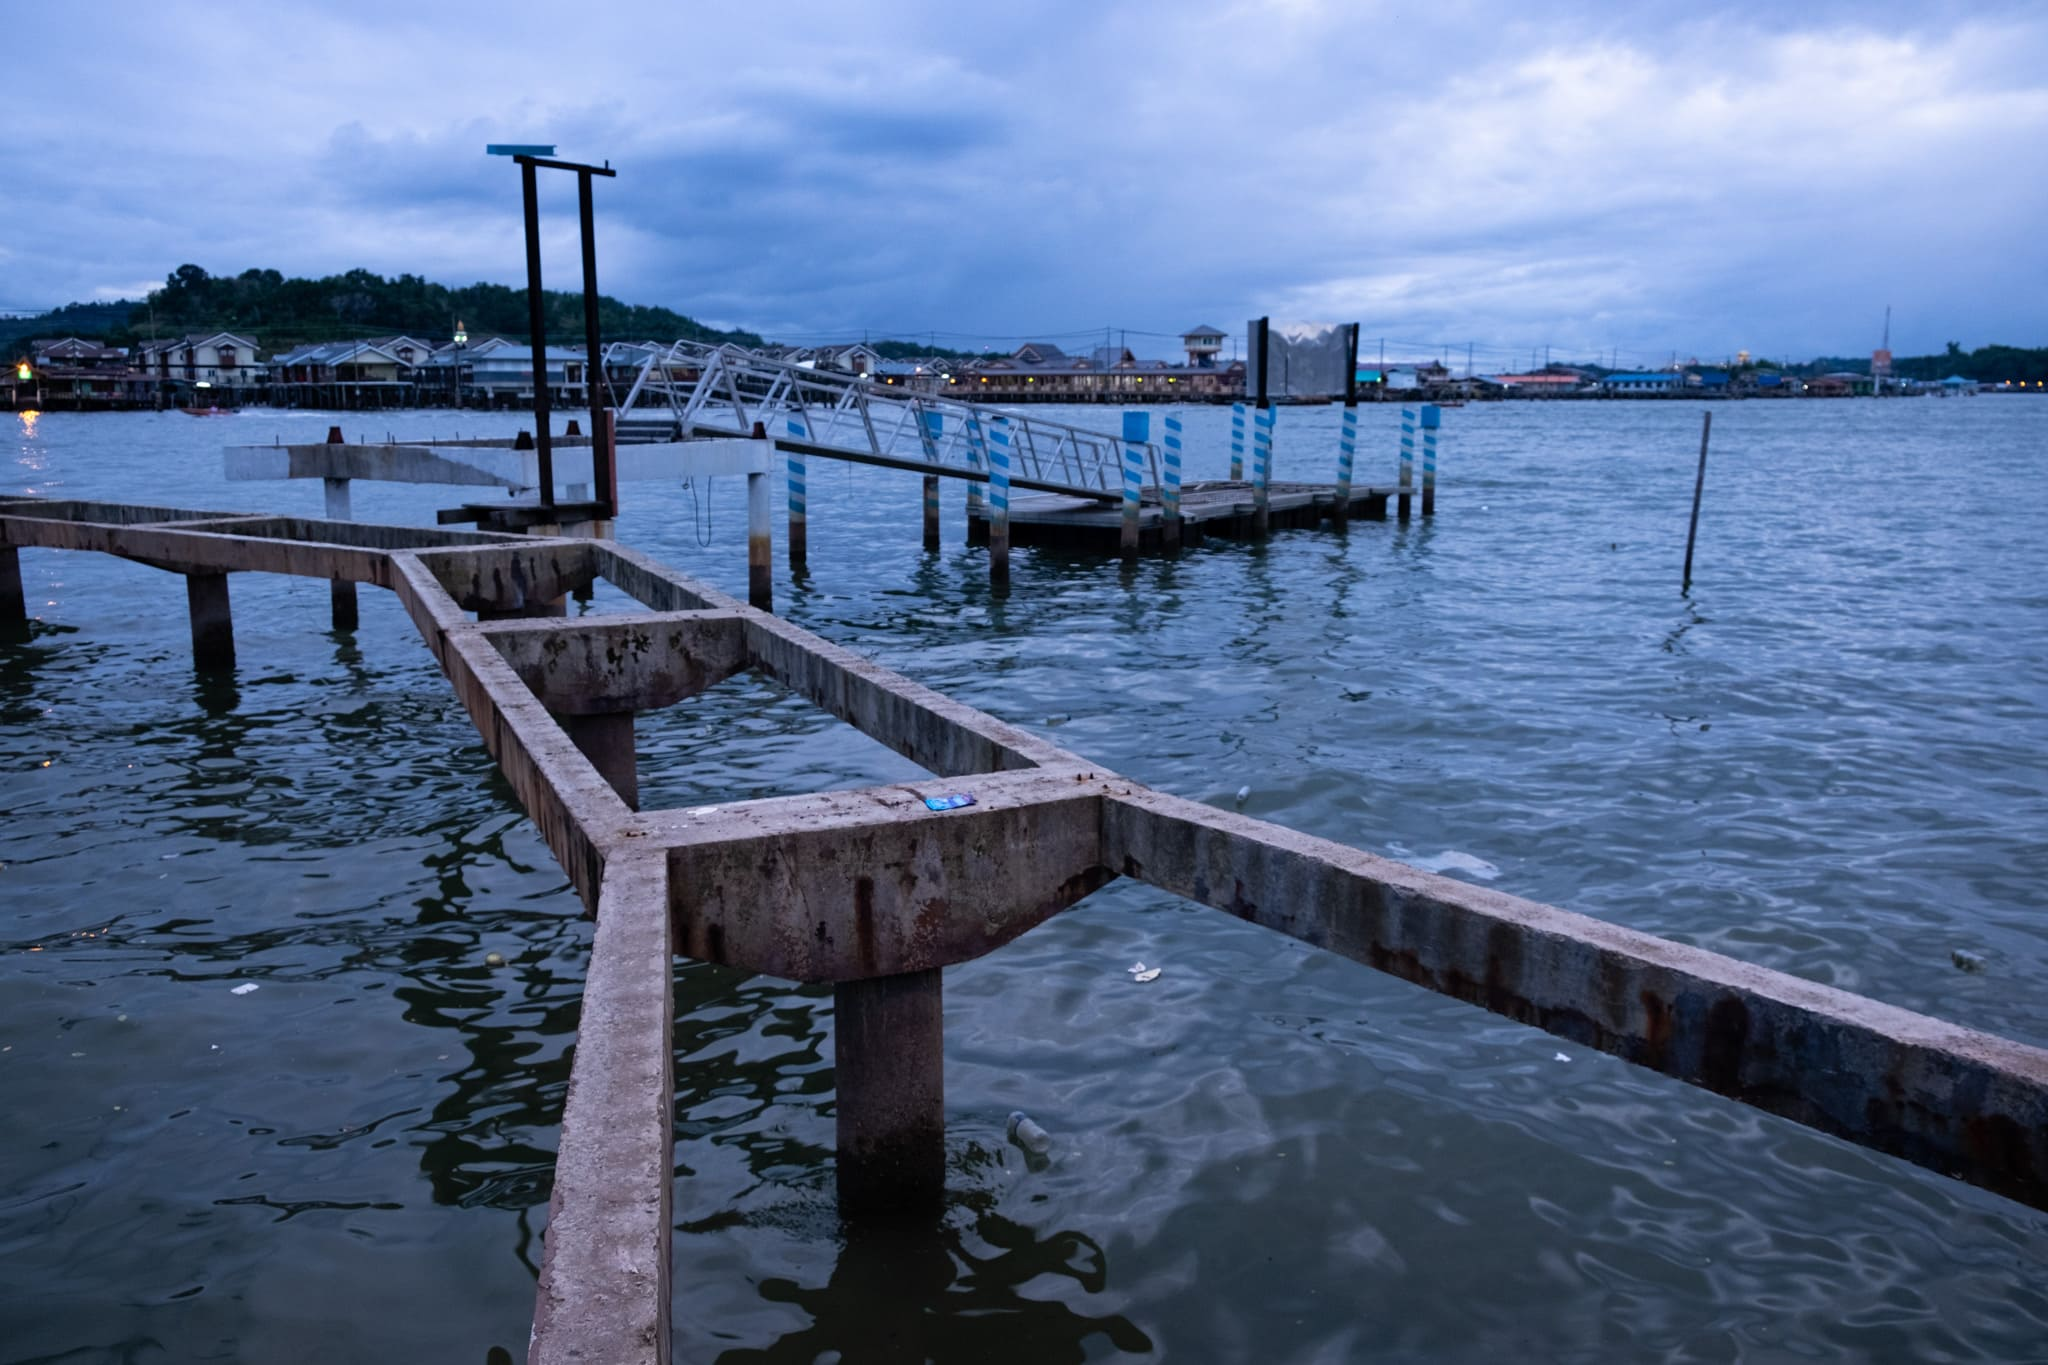 Old and broken pier in a littered waterfront of Bandar Seri Begawan, Brunei.